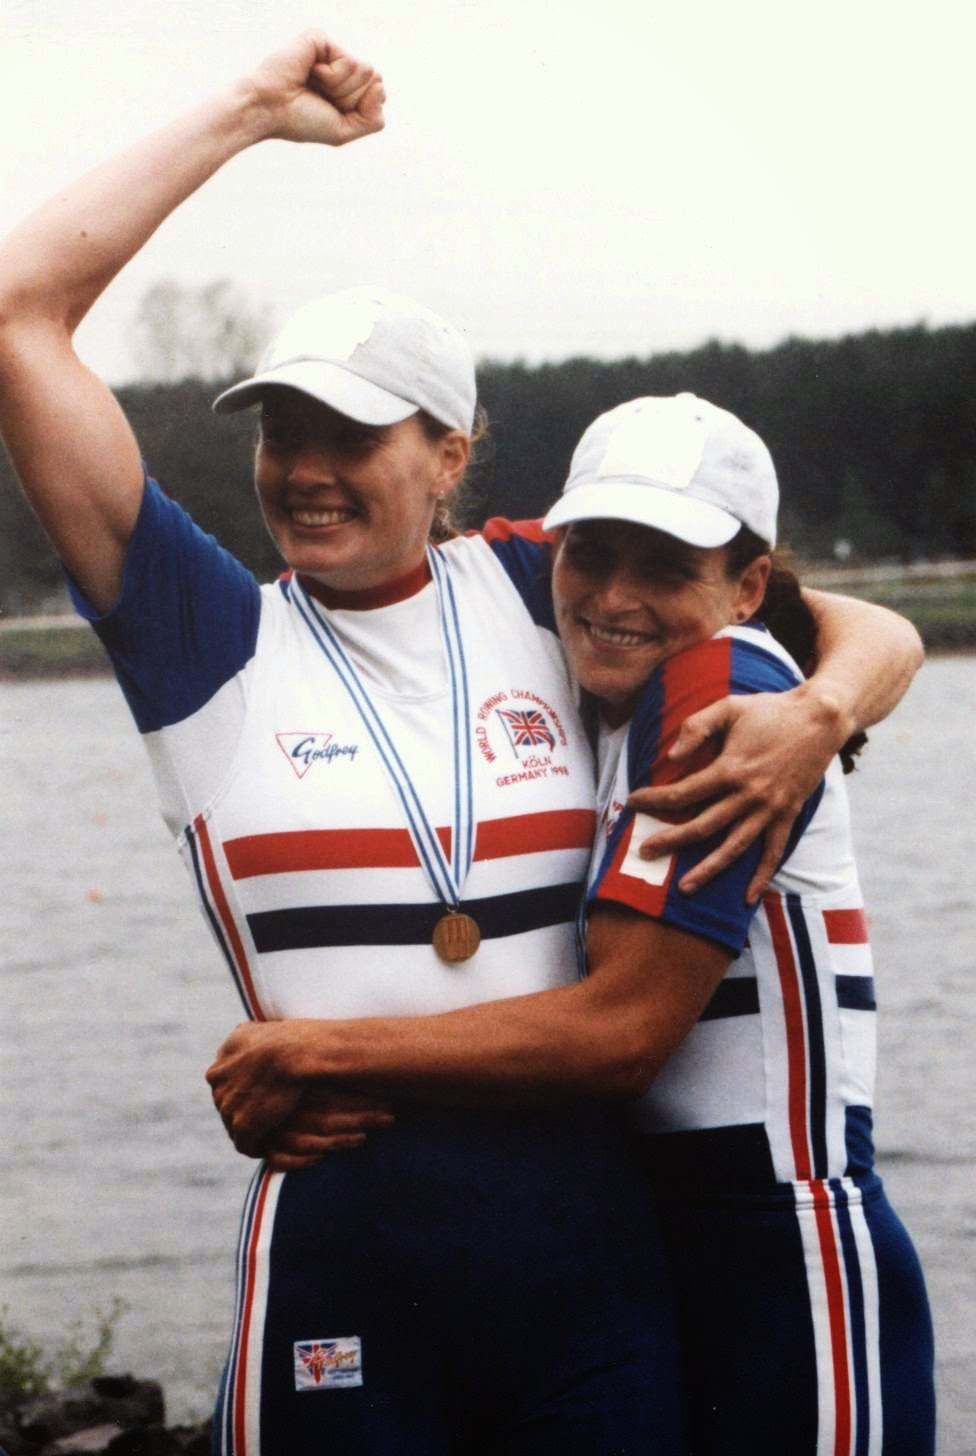 Two women hugging and looking happy with medals